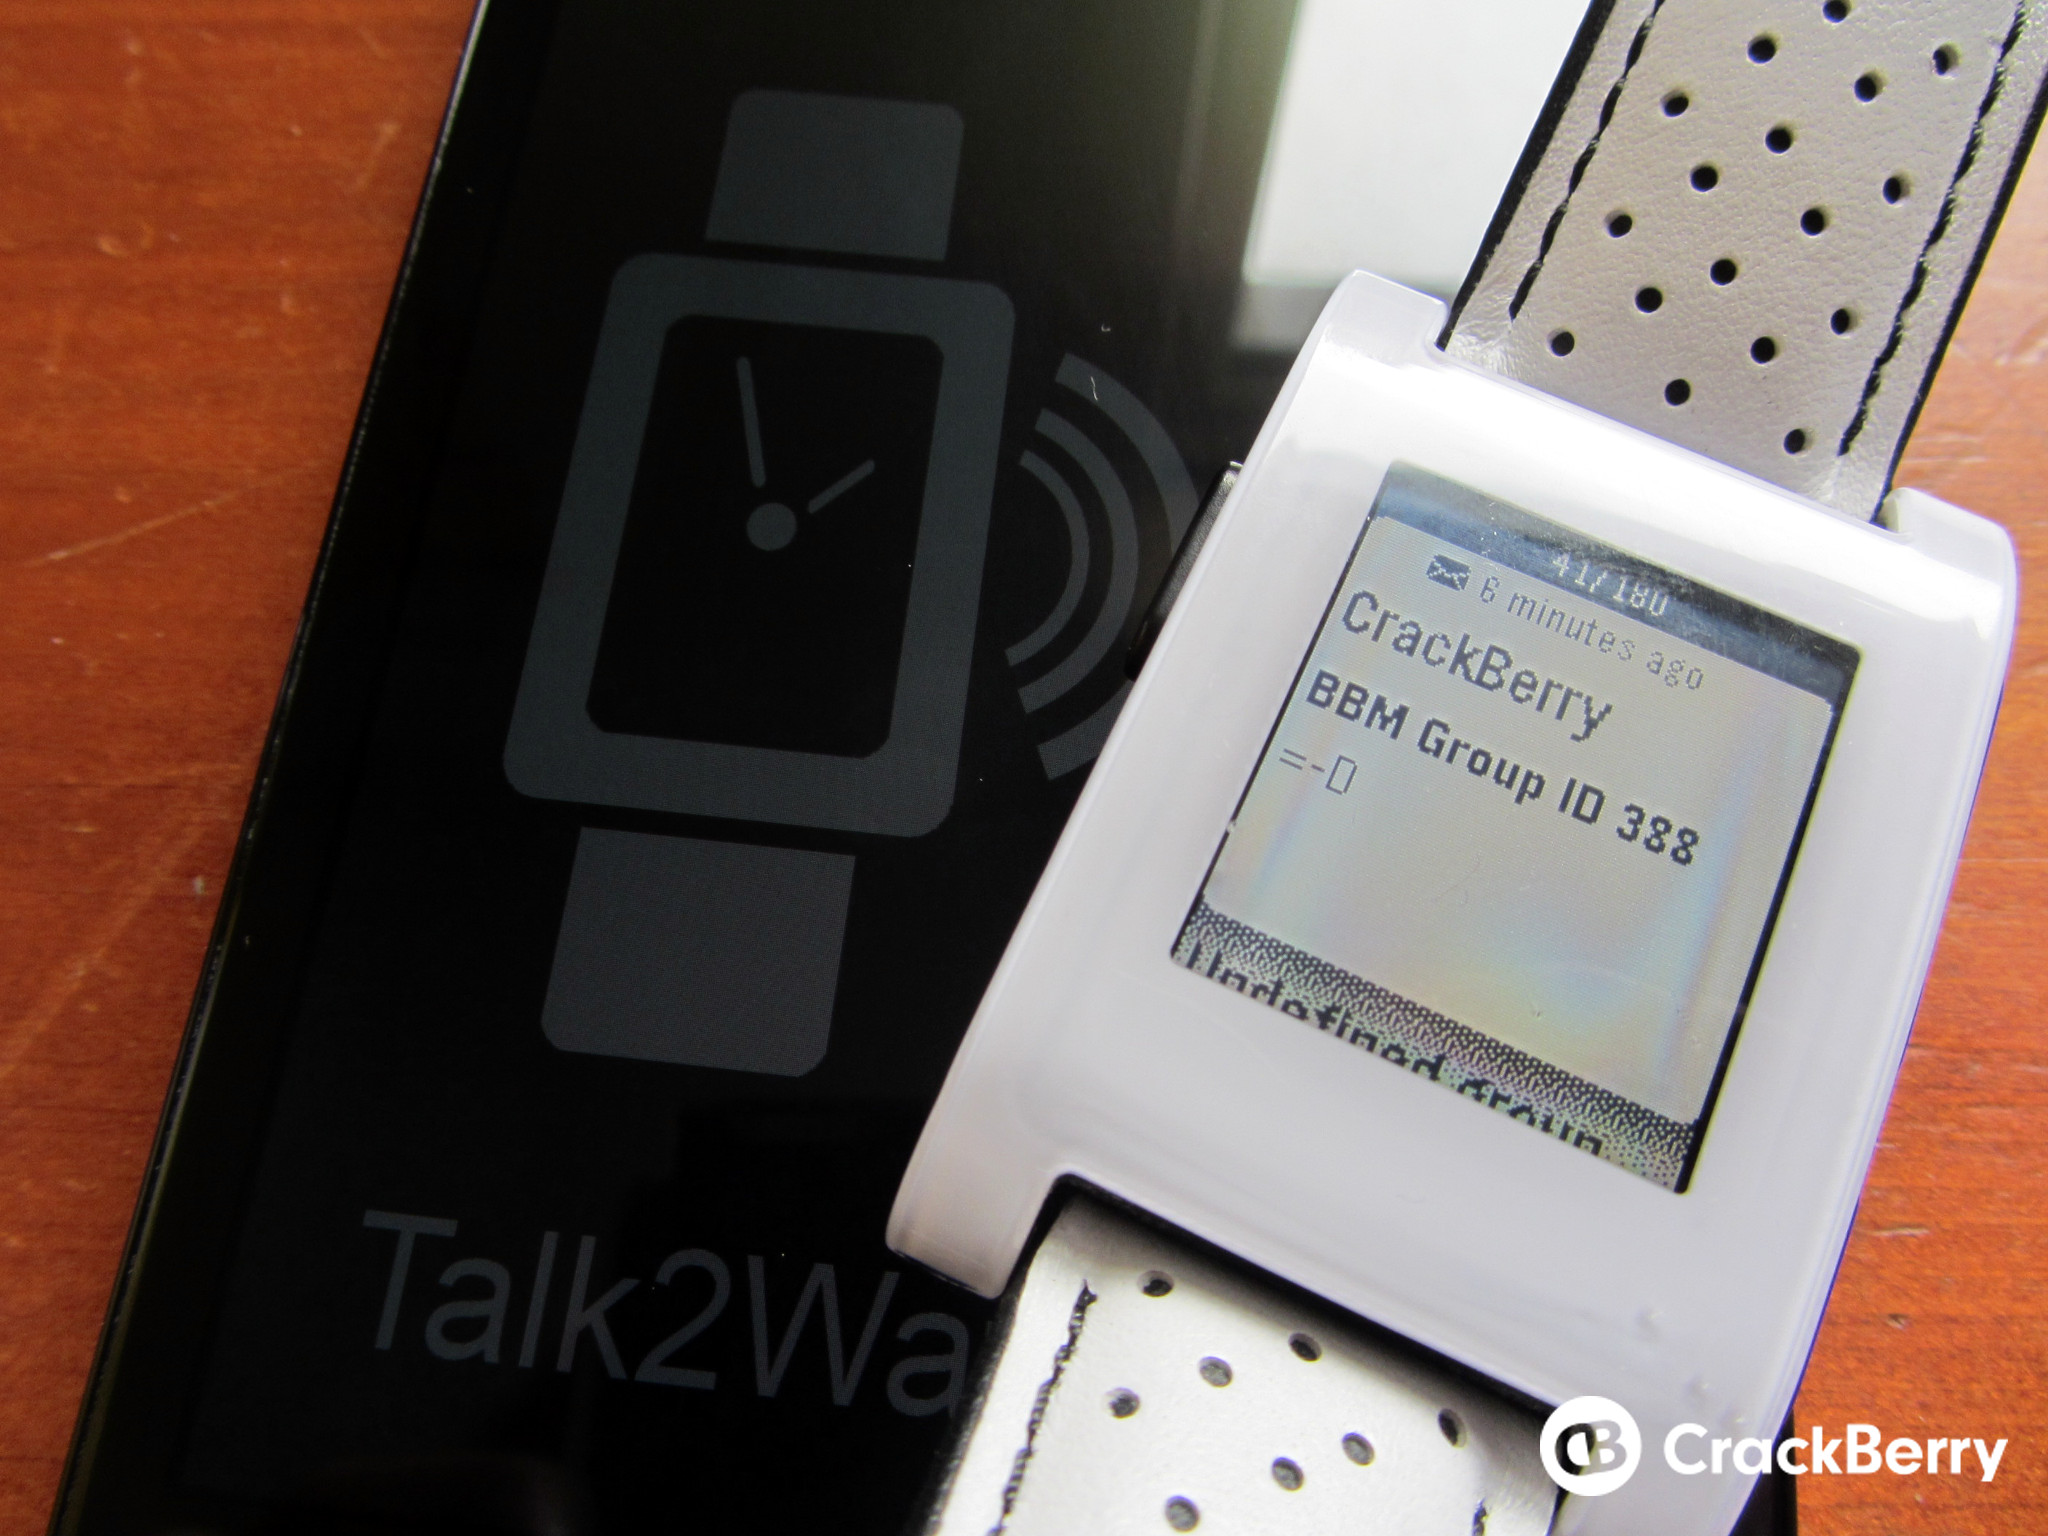 Talk2Watch Pro adds BBM Contact Manager to latest update